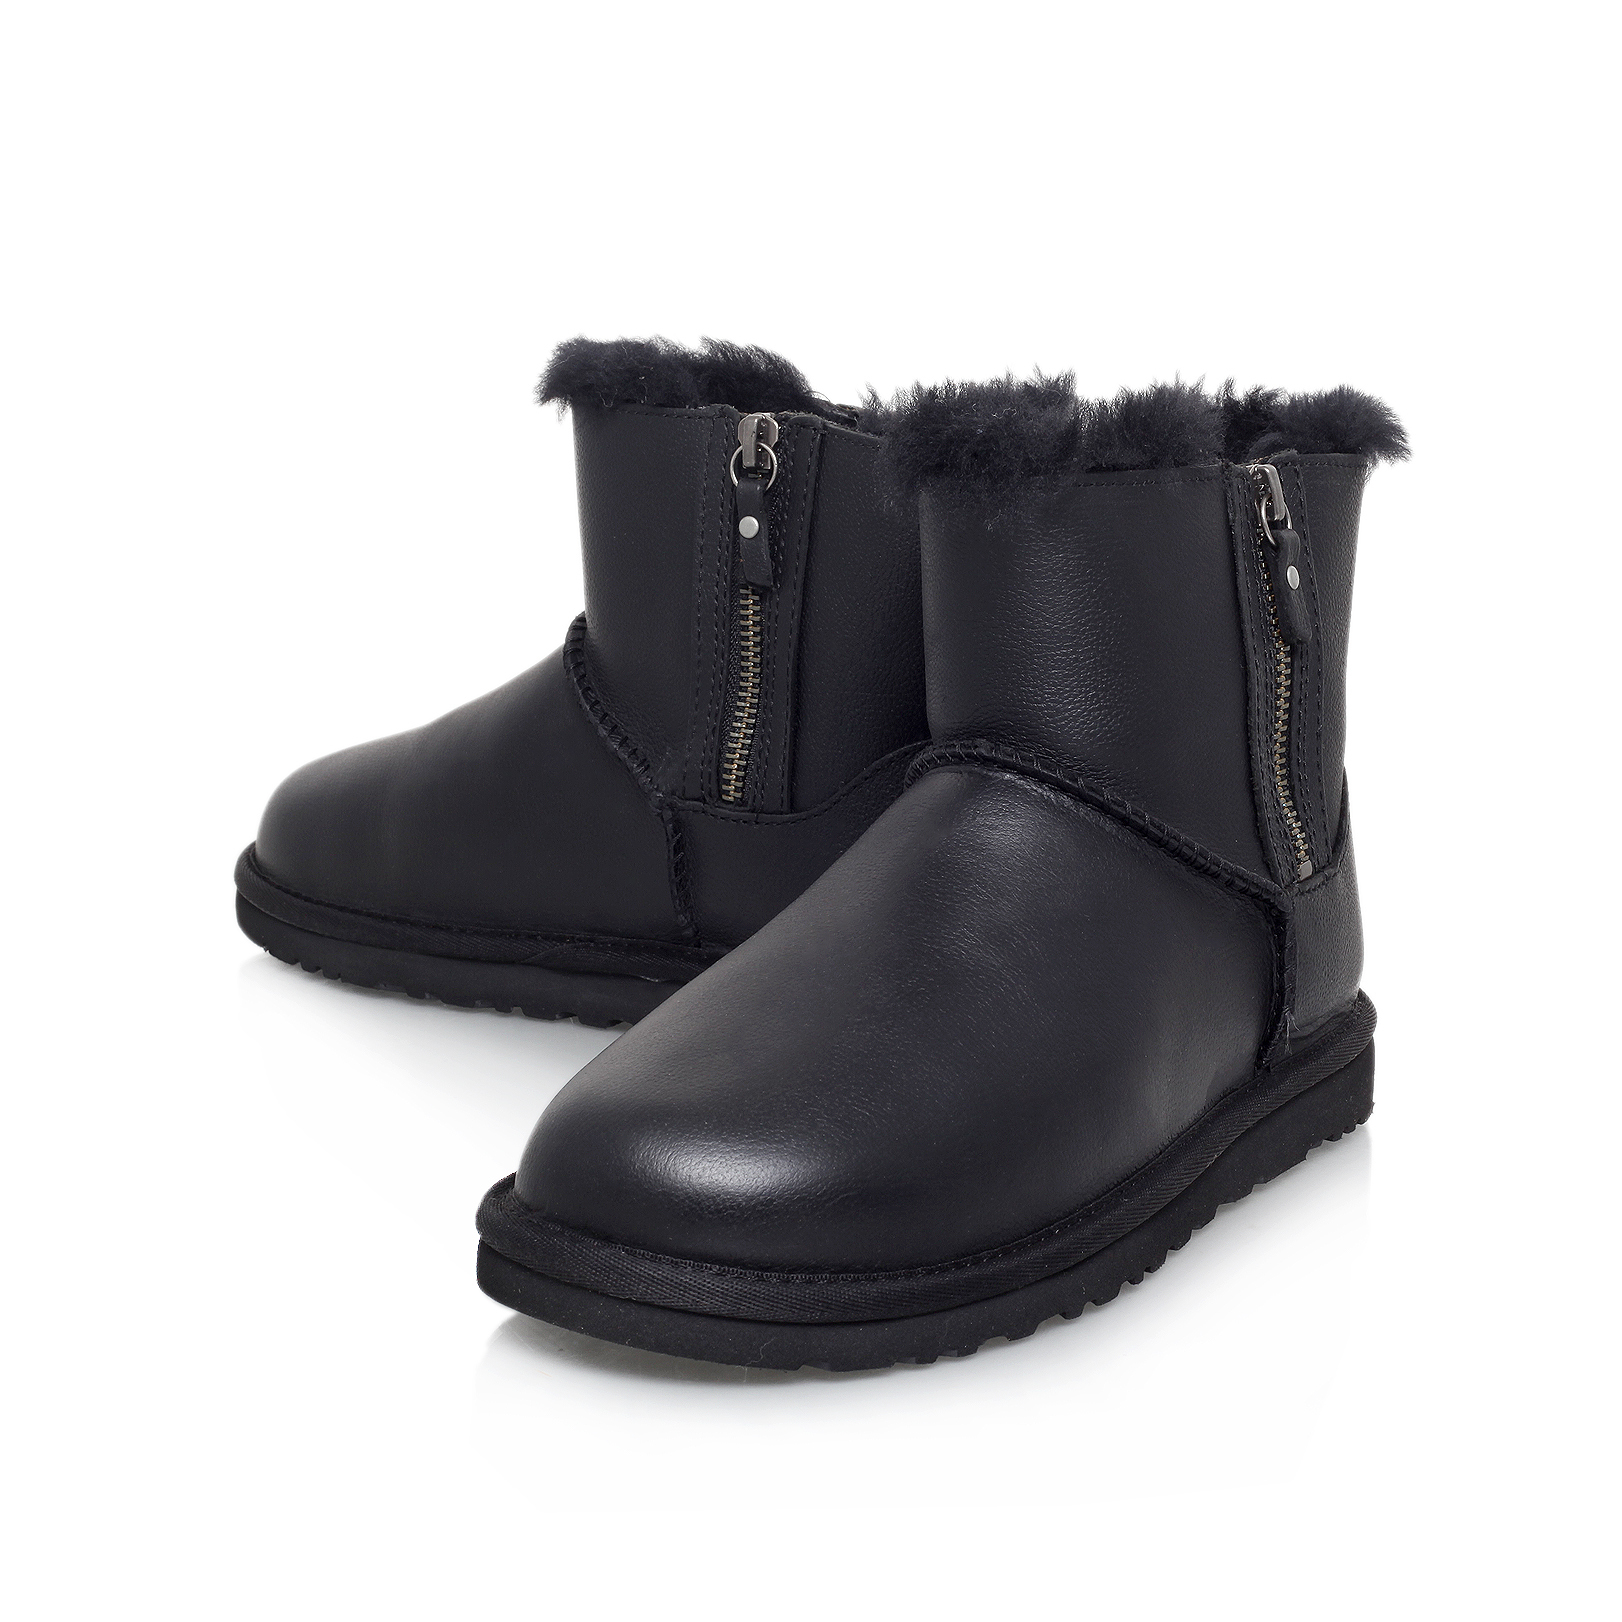 CLASSIC MINI DOUBLE ZIP Ugg Classic Mini Double Zip Black Leather Flat  Ankle Boot by UGG